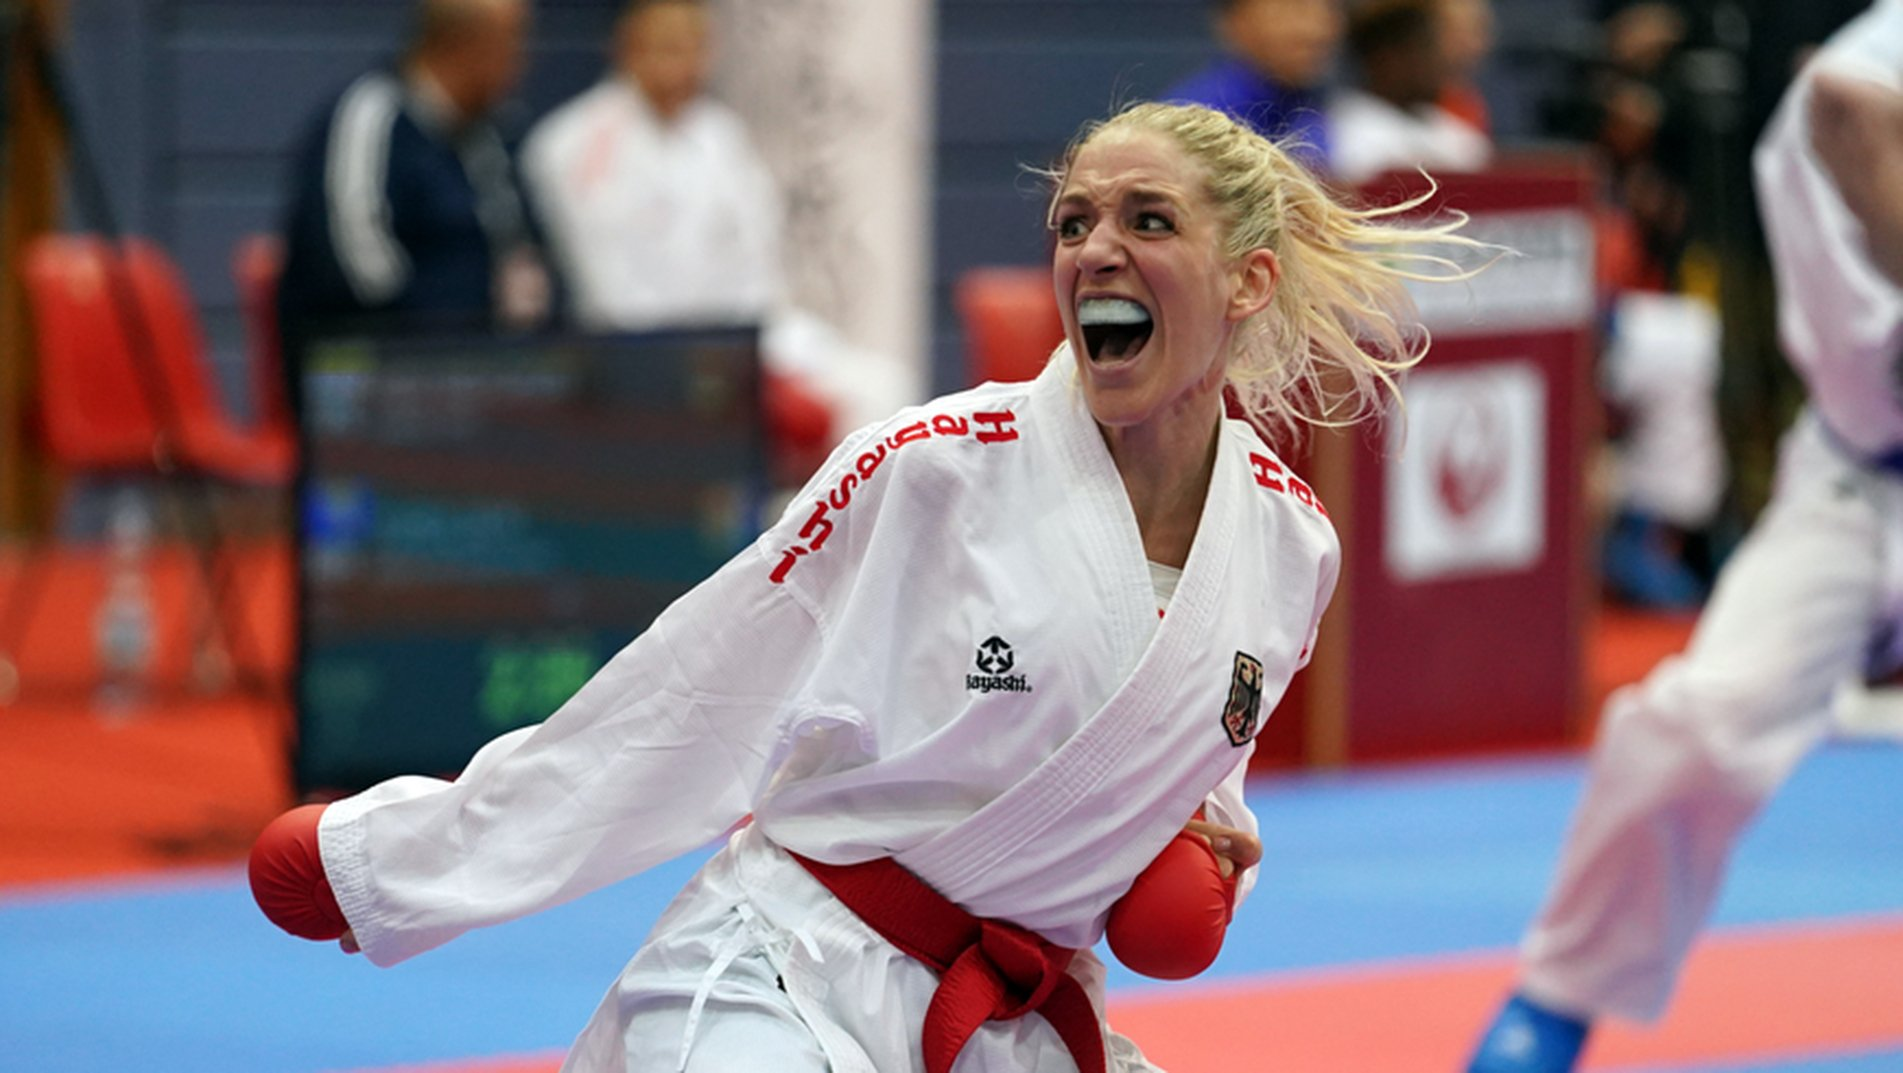 Surprising results in day 1 of Karate 1 Premier League Salzburg